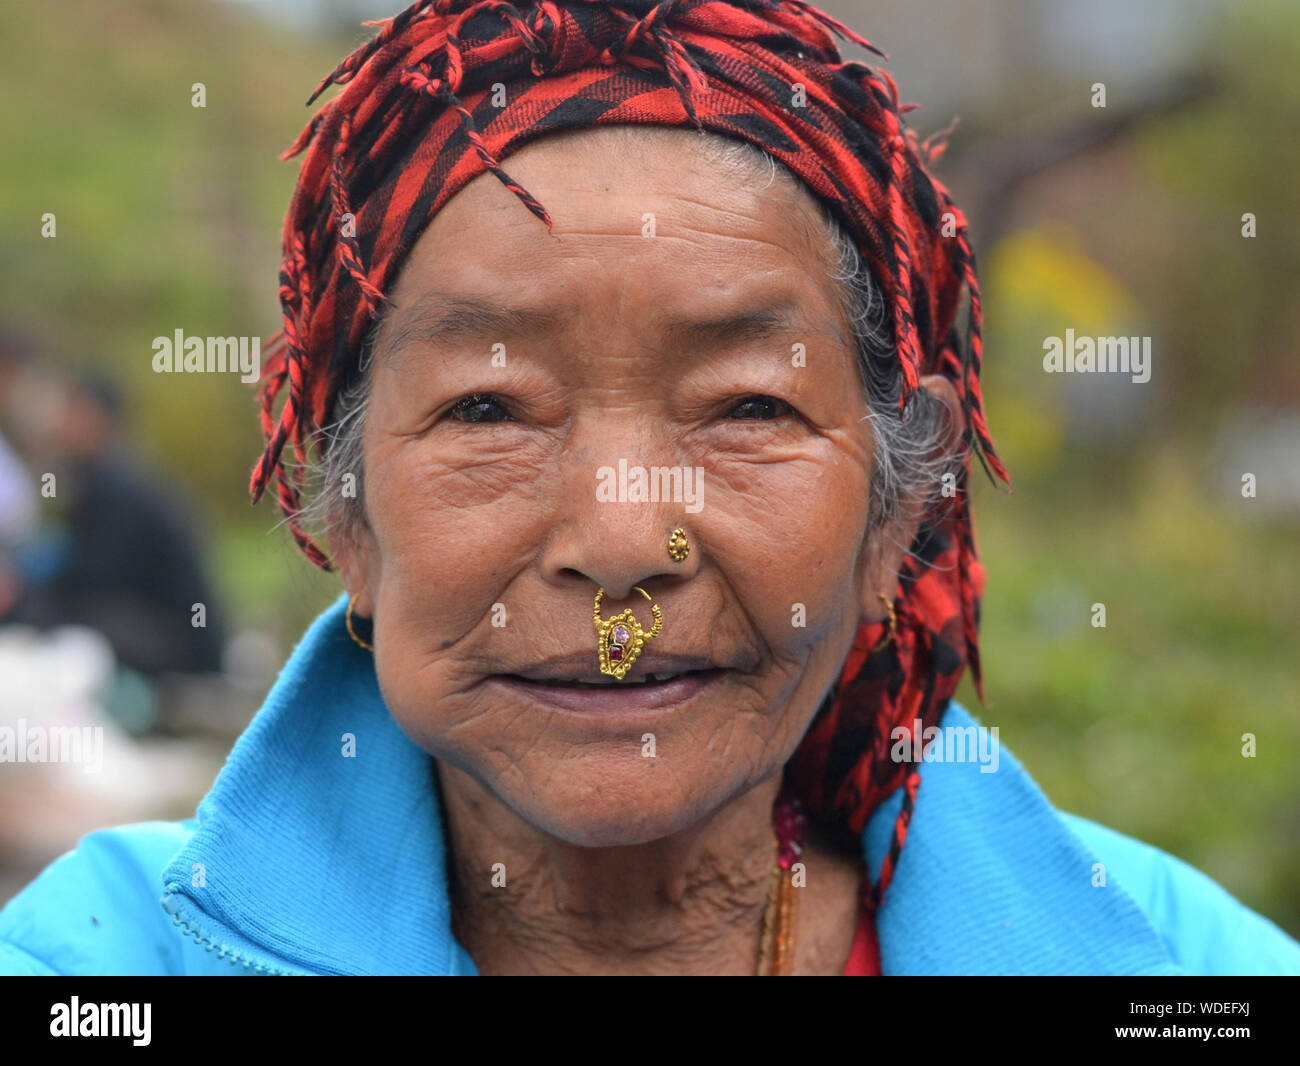 Septum Piercing High Resolution Stock Photography And Images Alamy